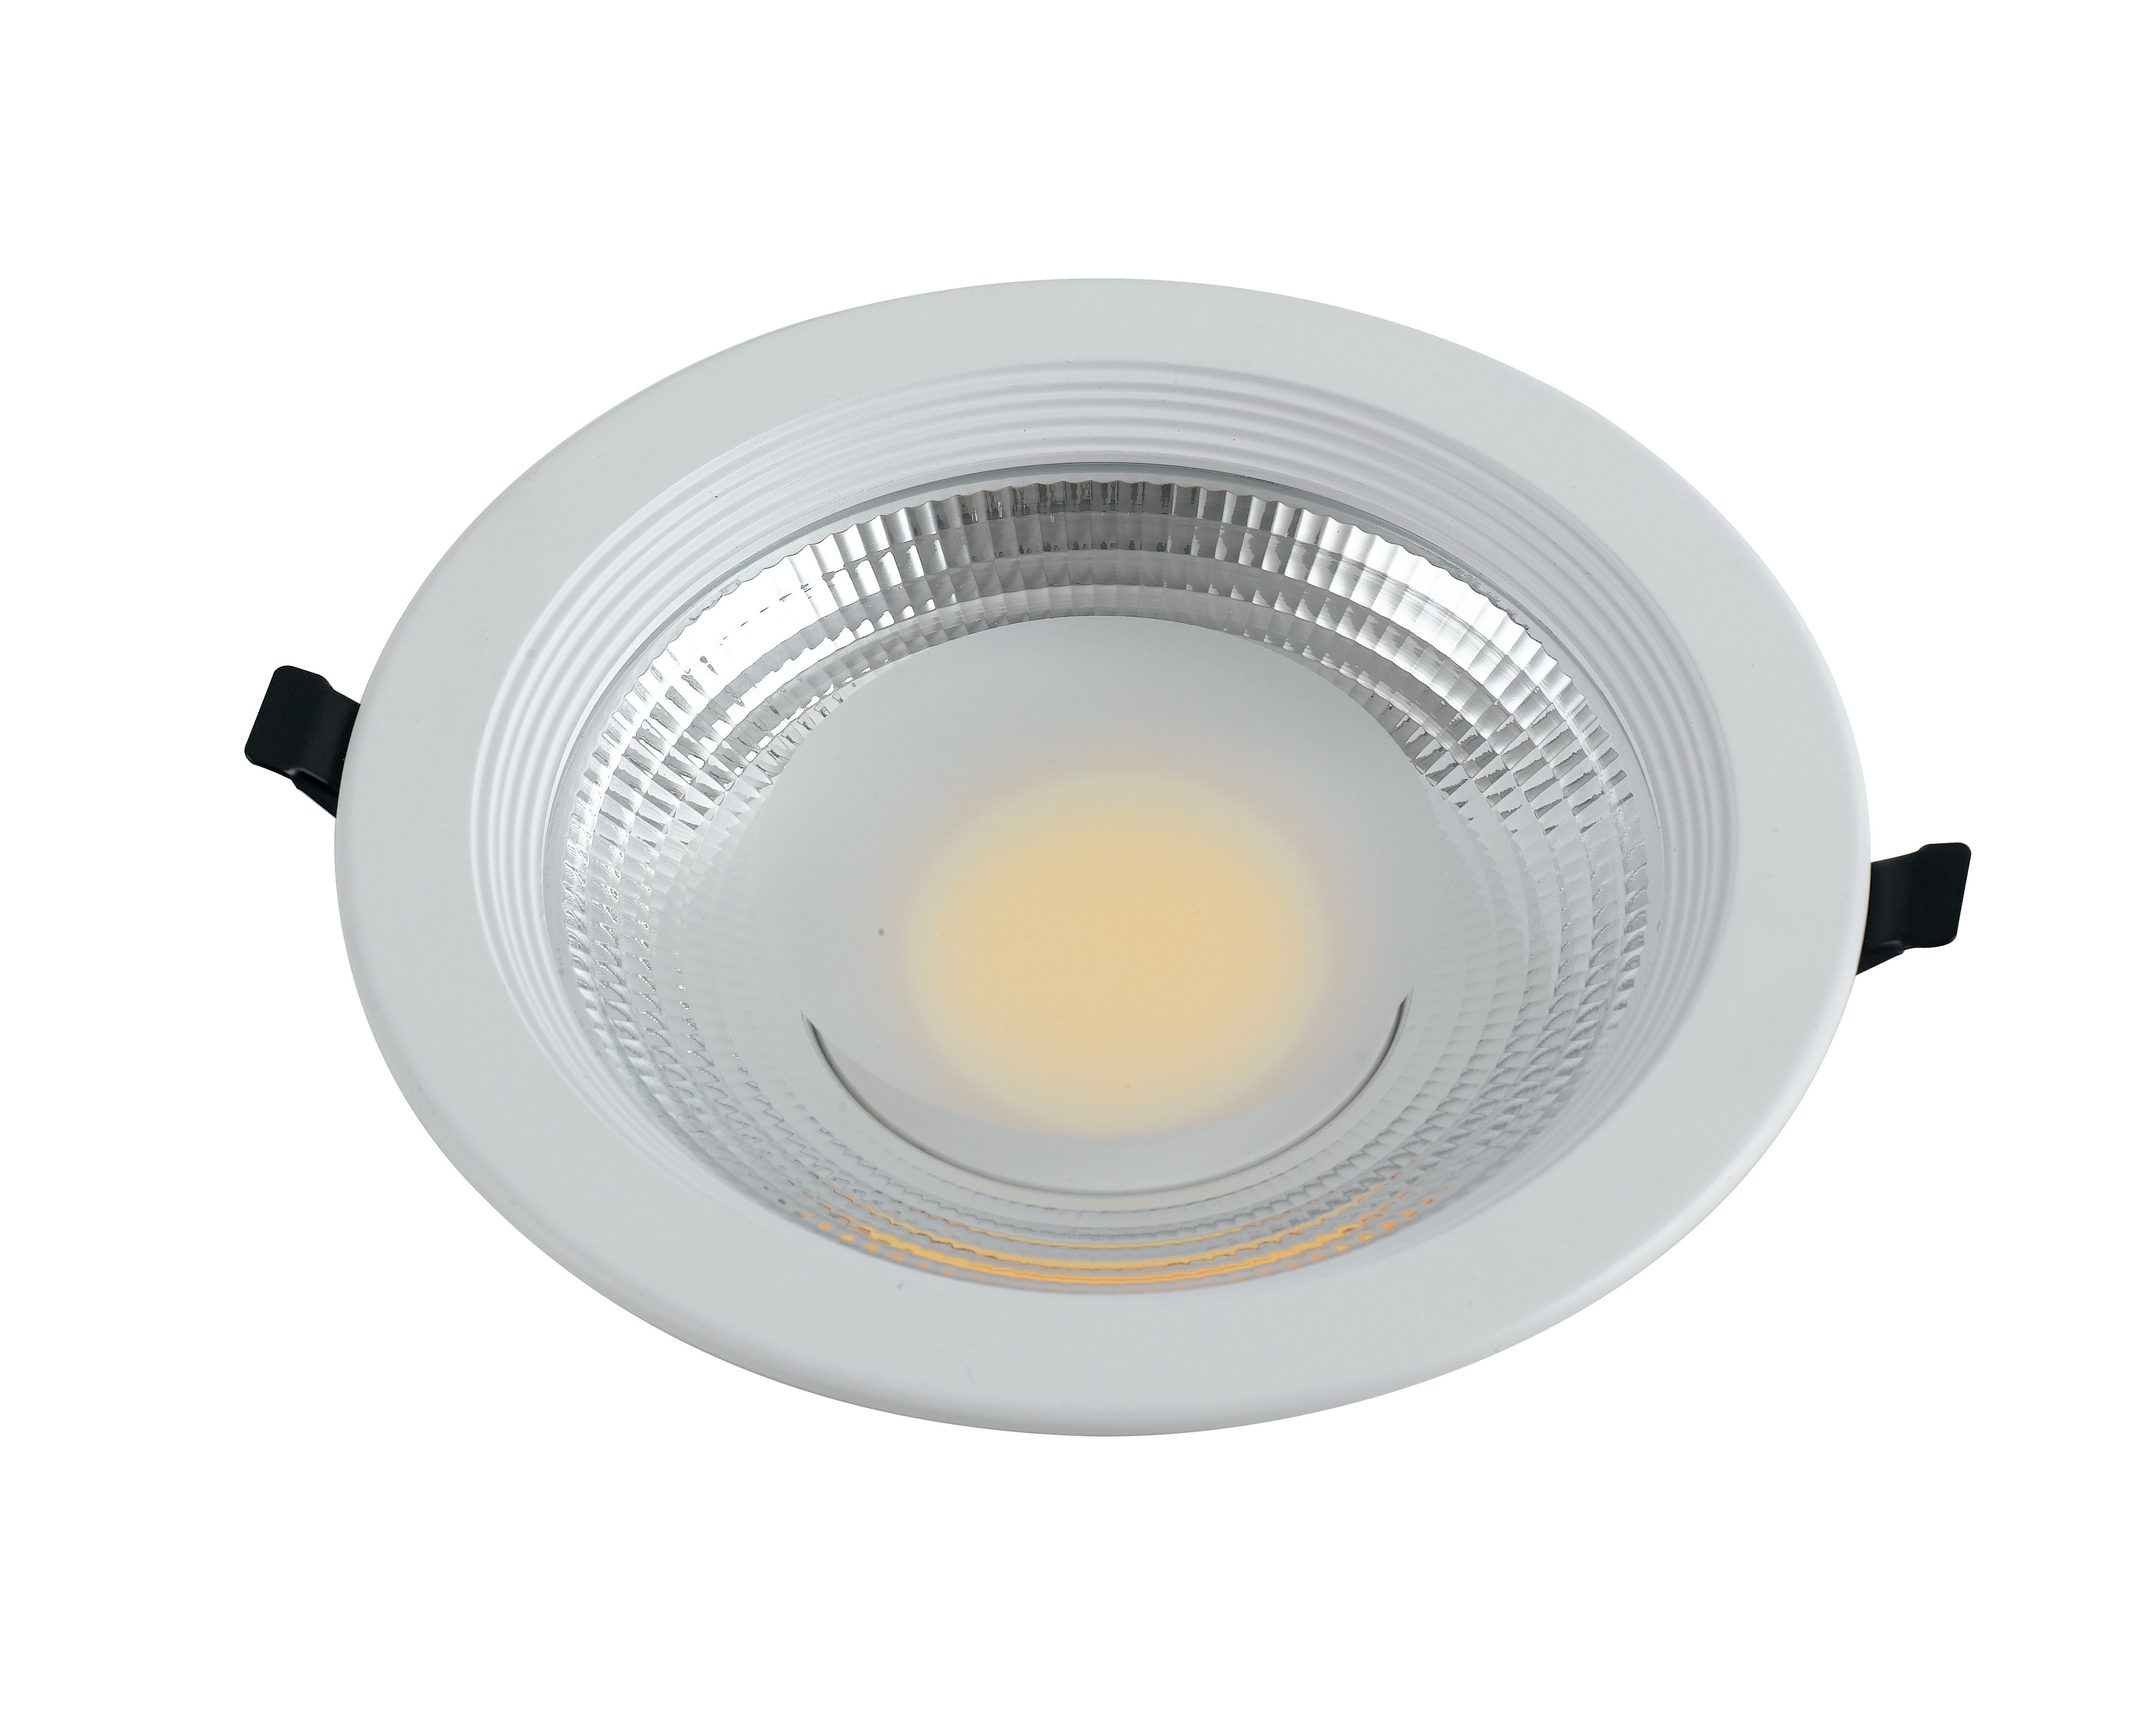 Plafoniera Led Incasso Tonda : Inc lyra 20f 8031434891225 fan europe lighting faretto a incasso